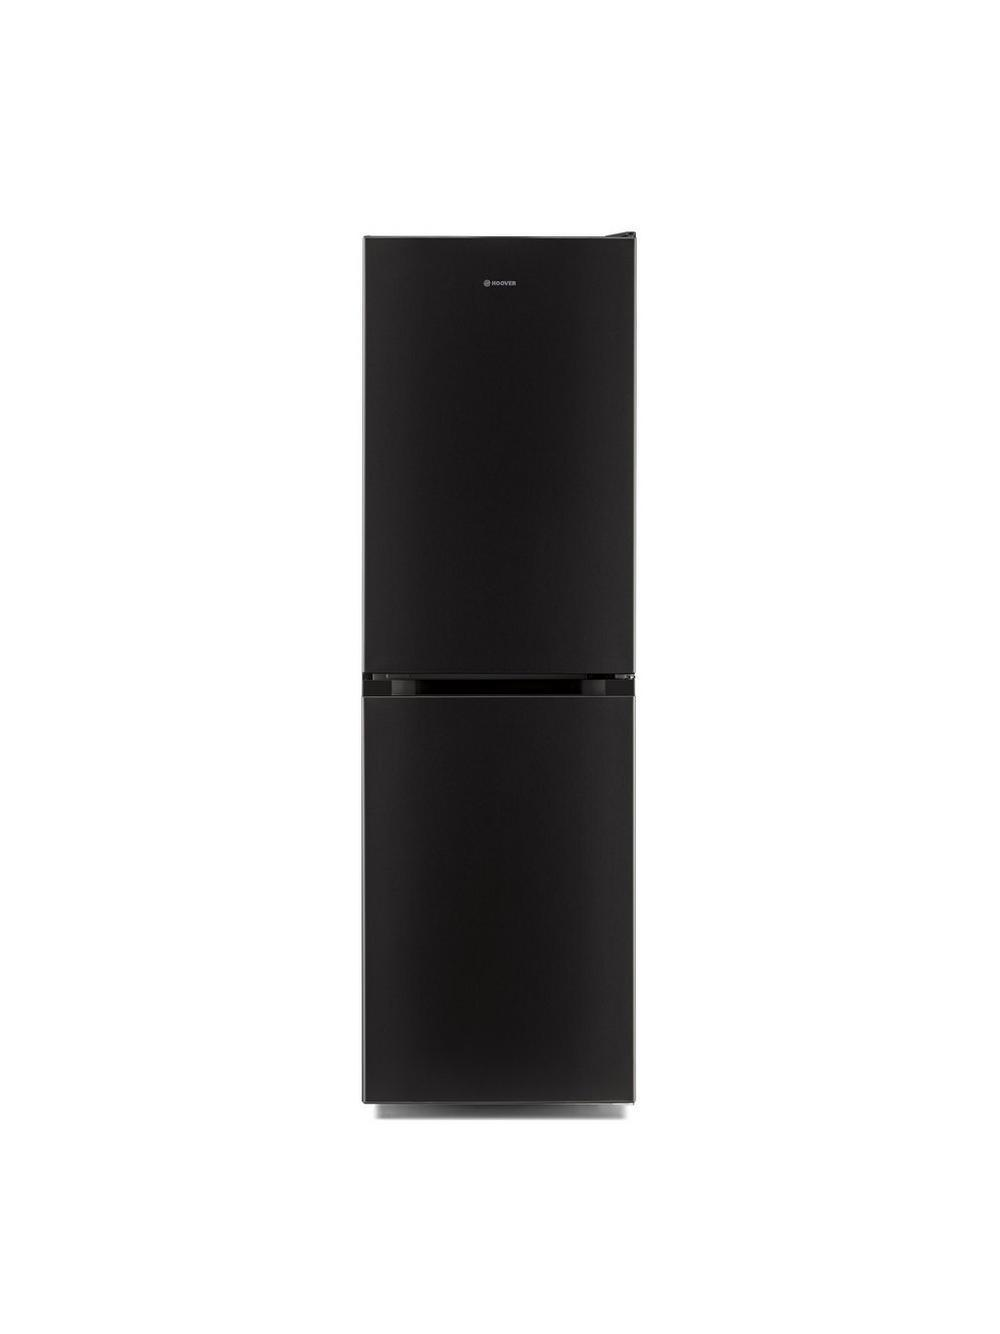 Hoover HMCL5172B Black Low Frost Fridge Freezer